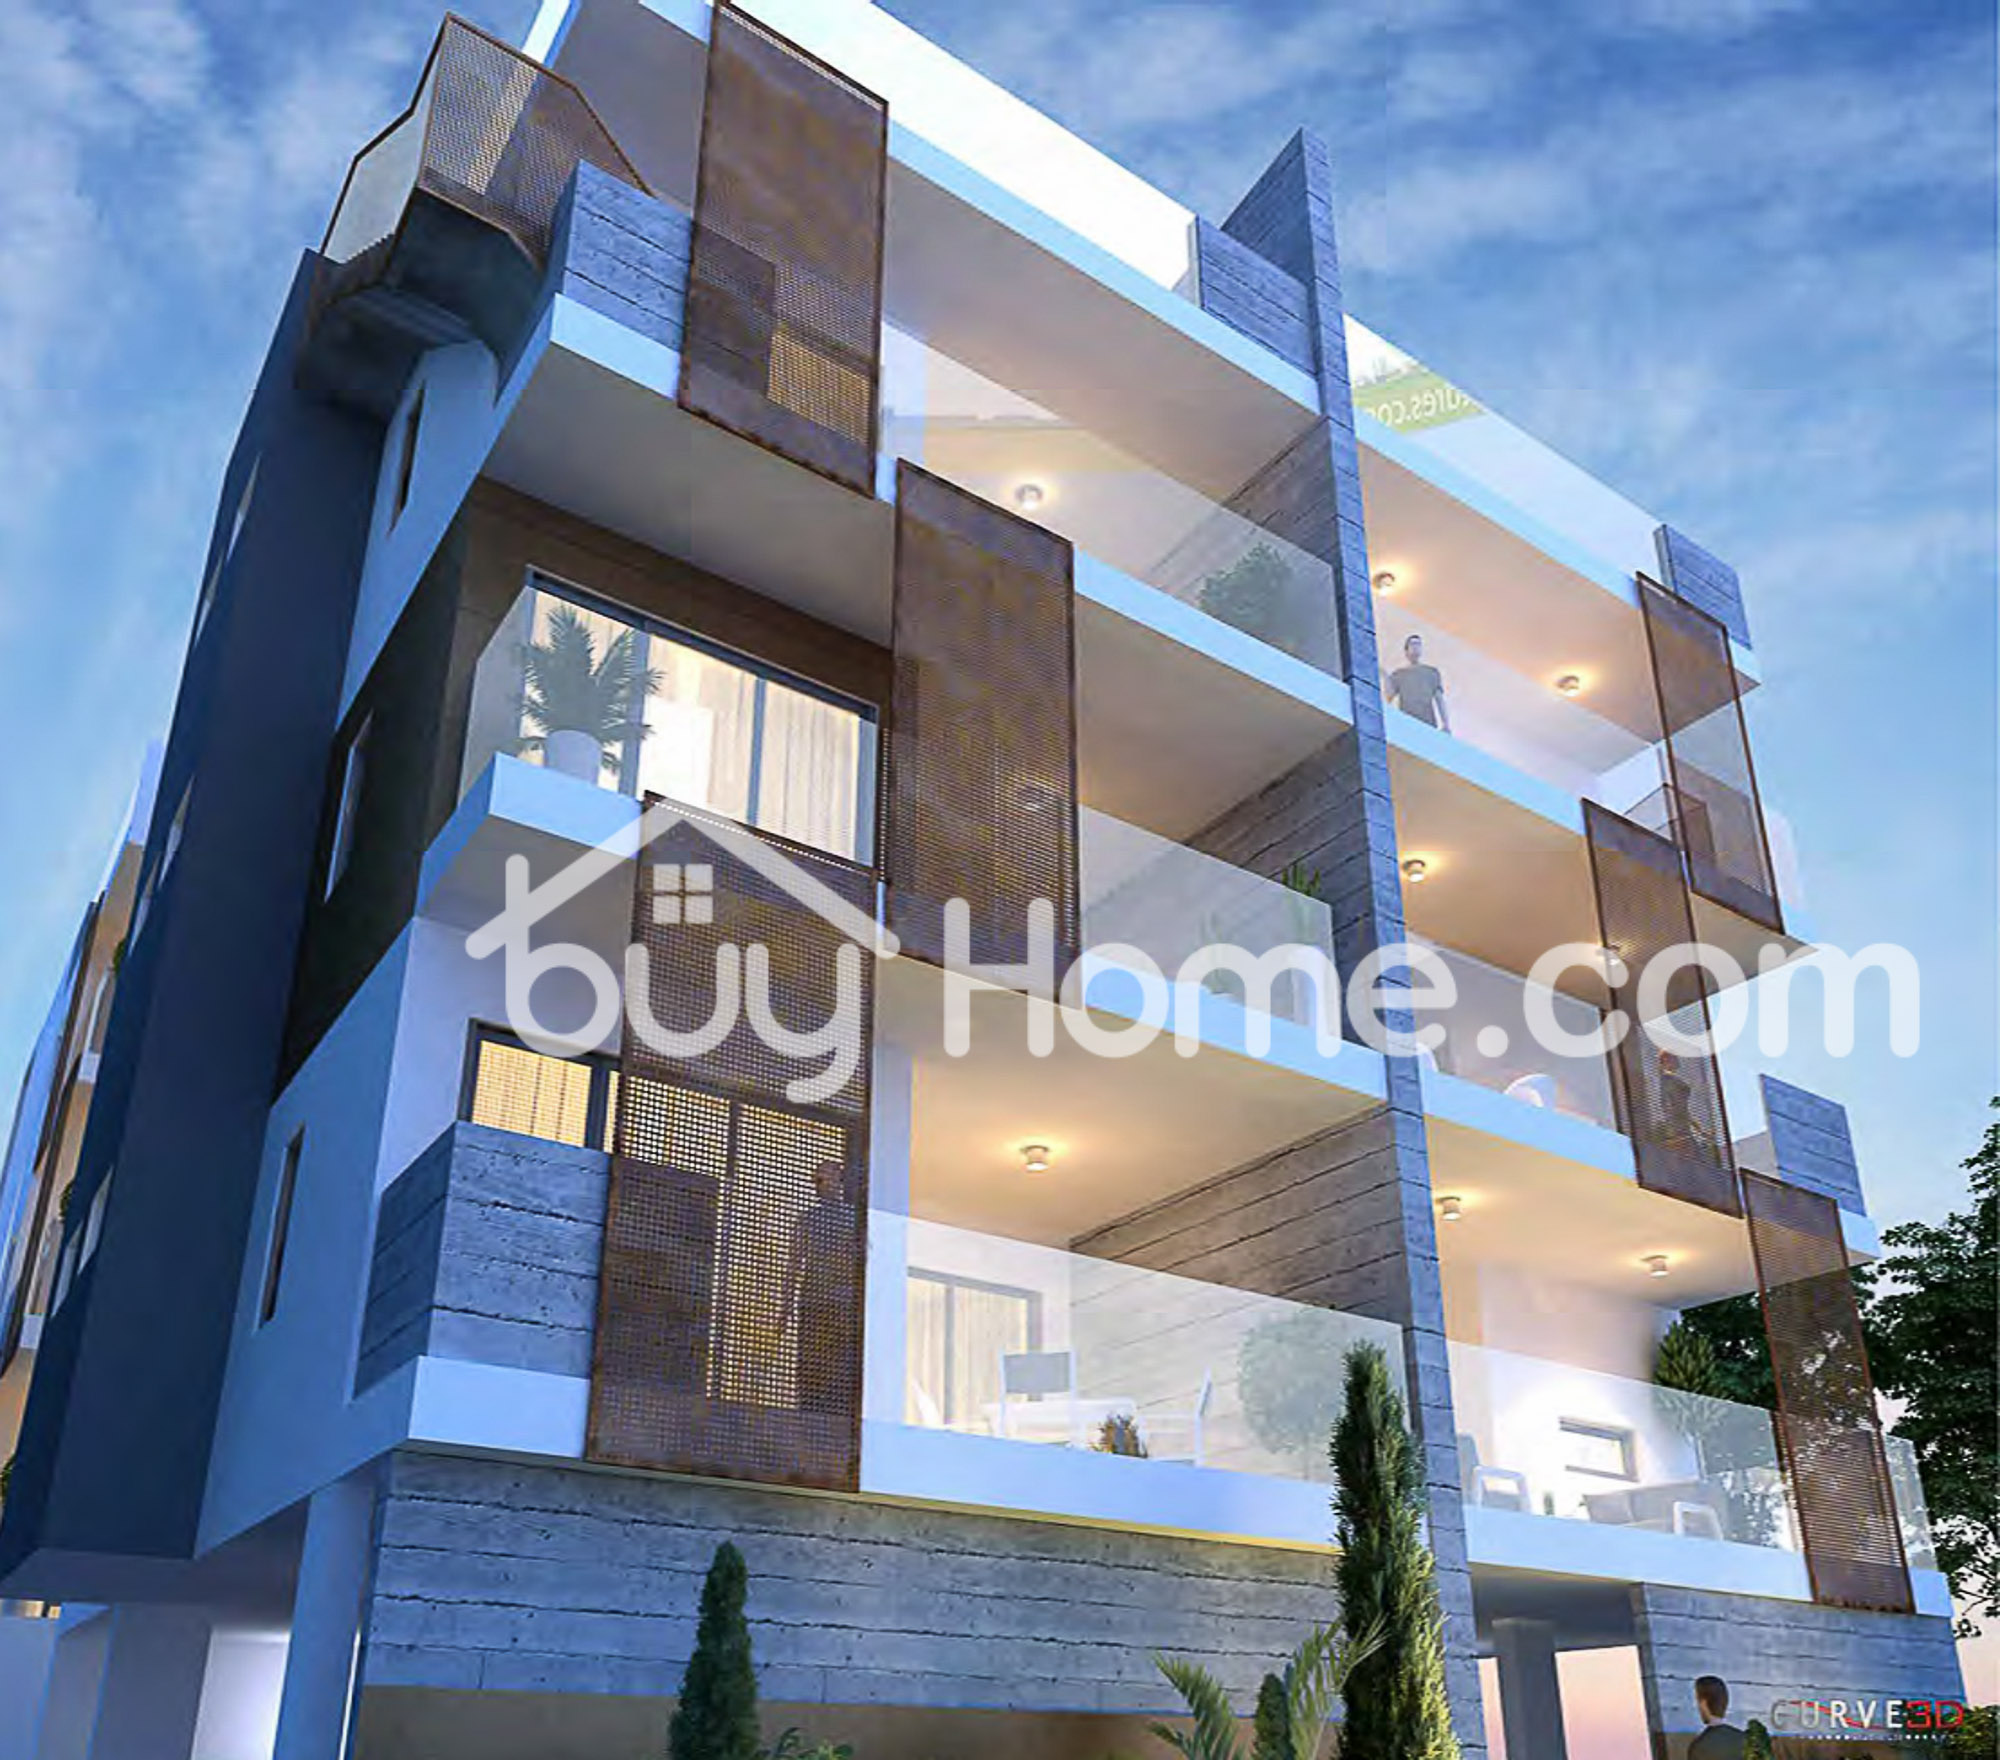 2 Bedroom Luxury Apartments | BuyHome